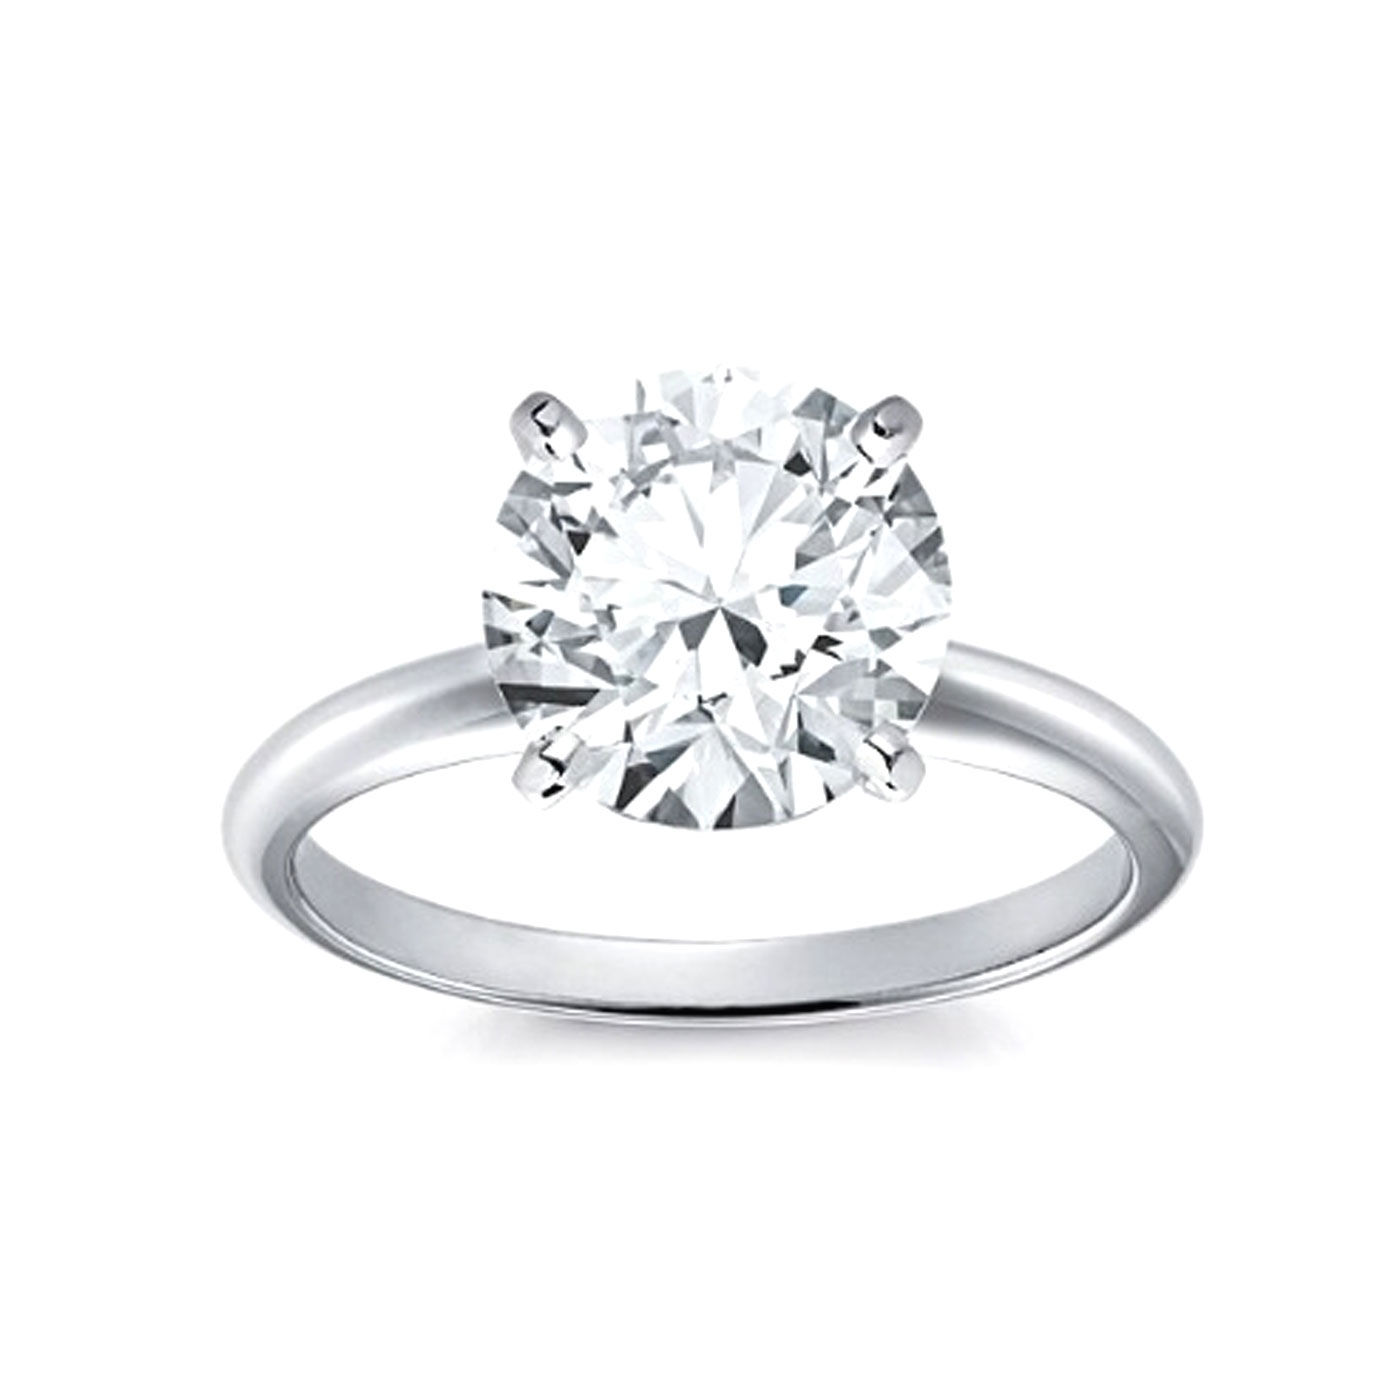 de engagement ring solitaire cut beers platinum diamond aura cushion